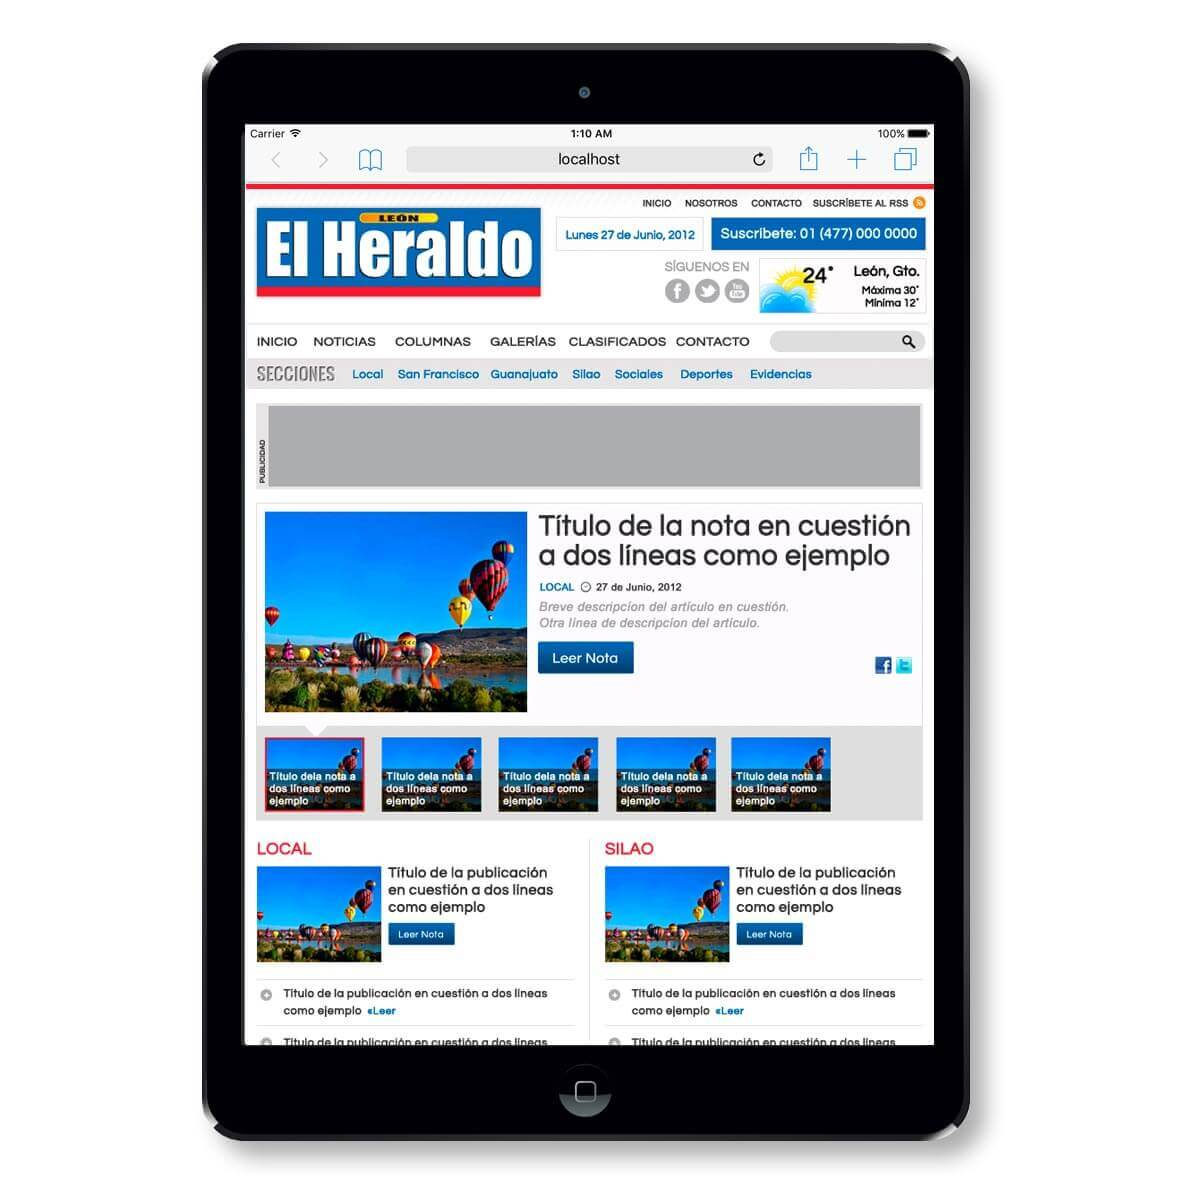 El Heraldo on mobile safari for iPad photo